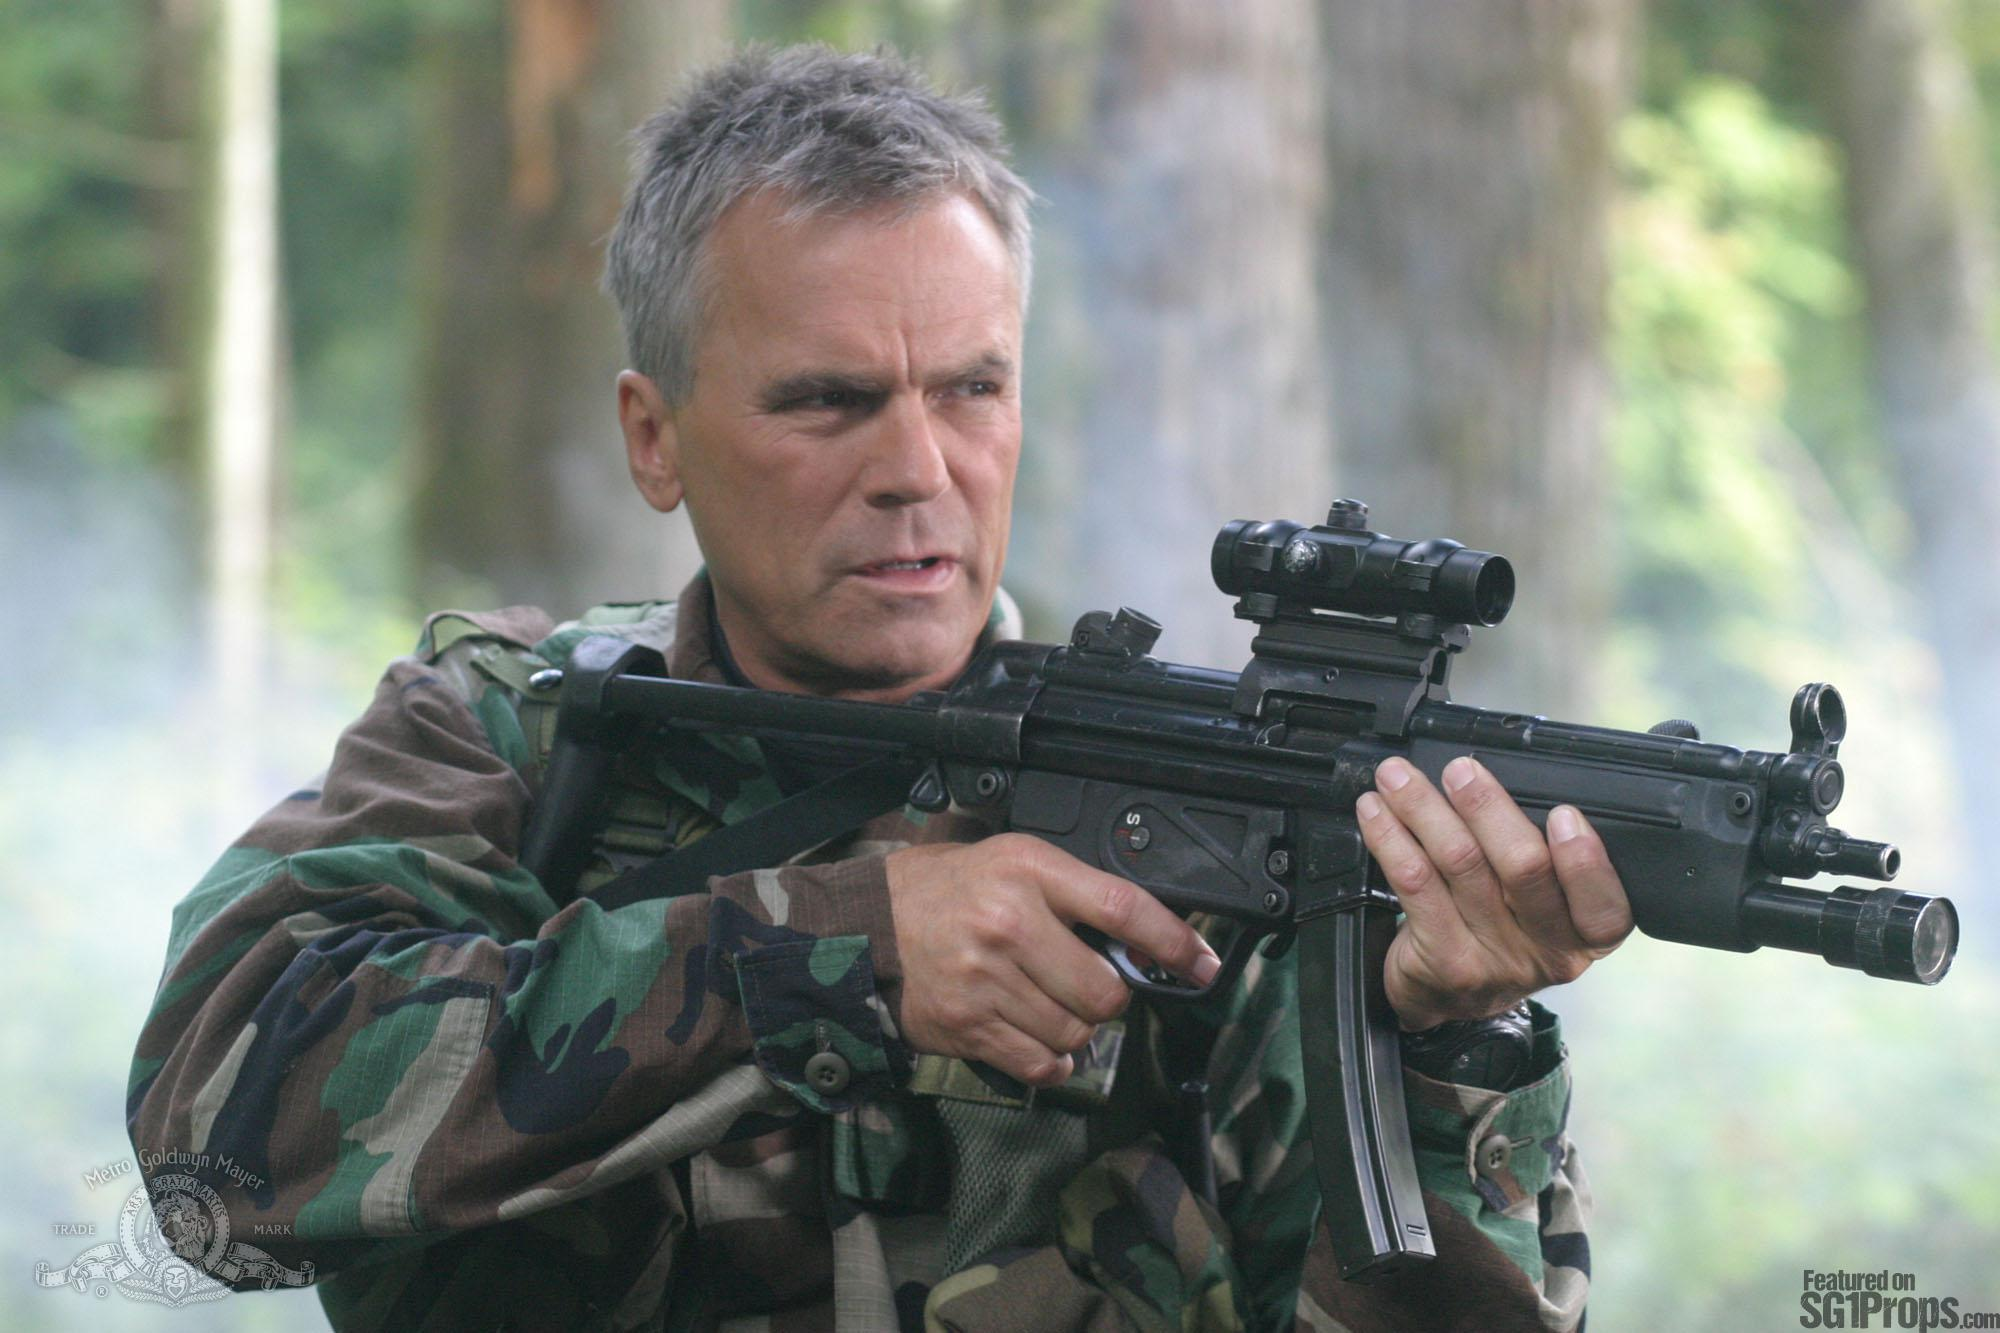 Mp5 Scope Sg1props Stargate Props And Costumes